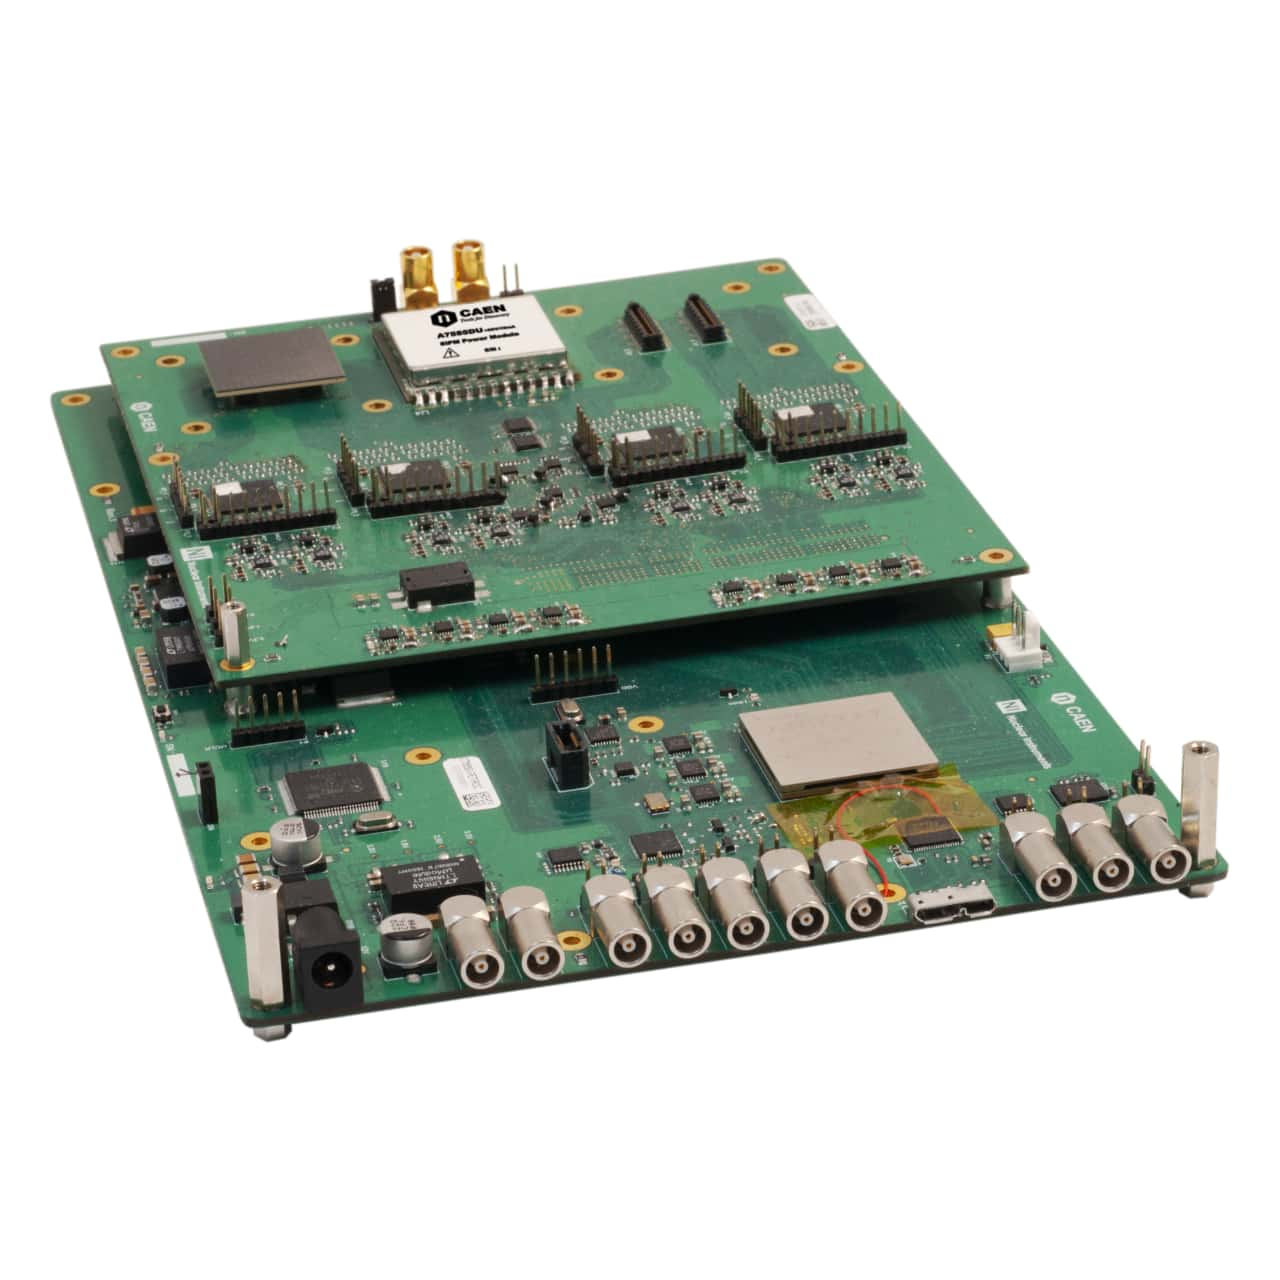 128-CHANNELs ASIC BASED IMAGING READOUT SYSTEM WITH 50 ps RESOLUTION ToF (WeeROC PETIROC 2A Based)